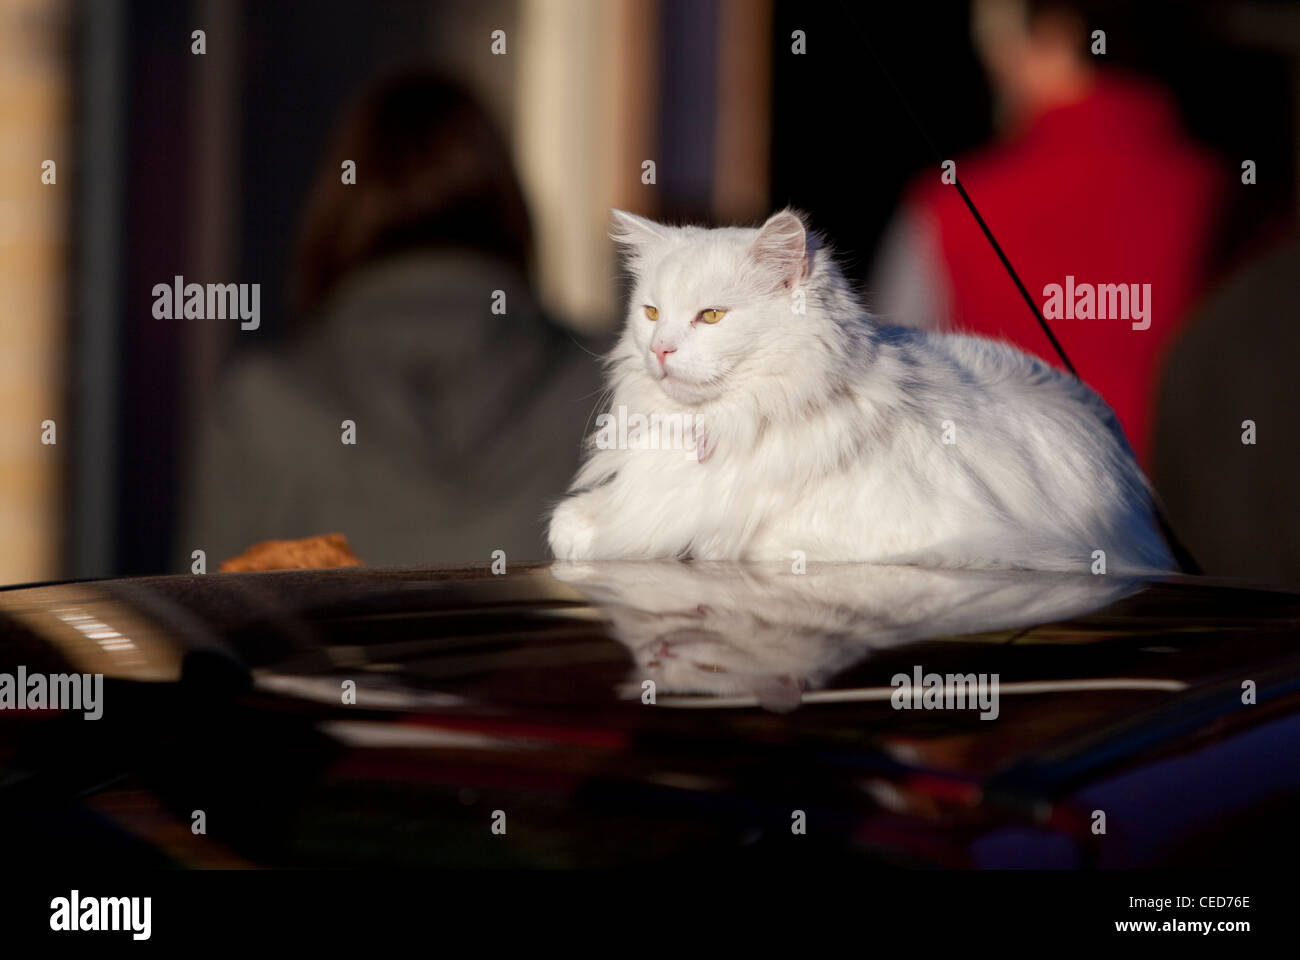 A Persian cat sitting on the roof of a parked car, London, England, UK - Stock Image